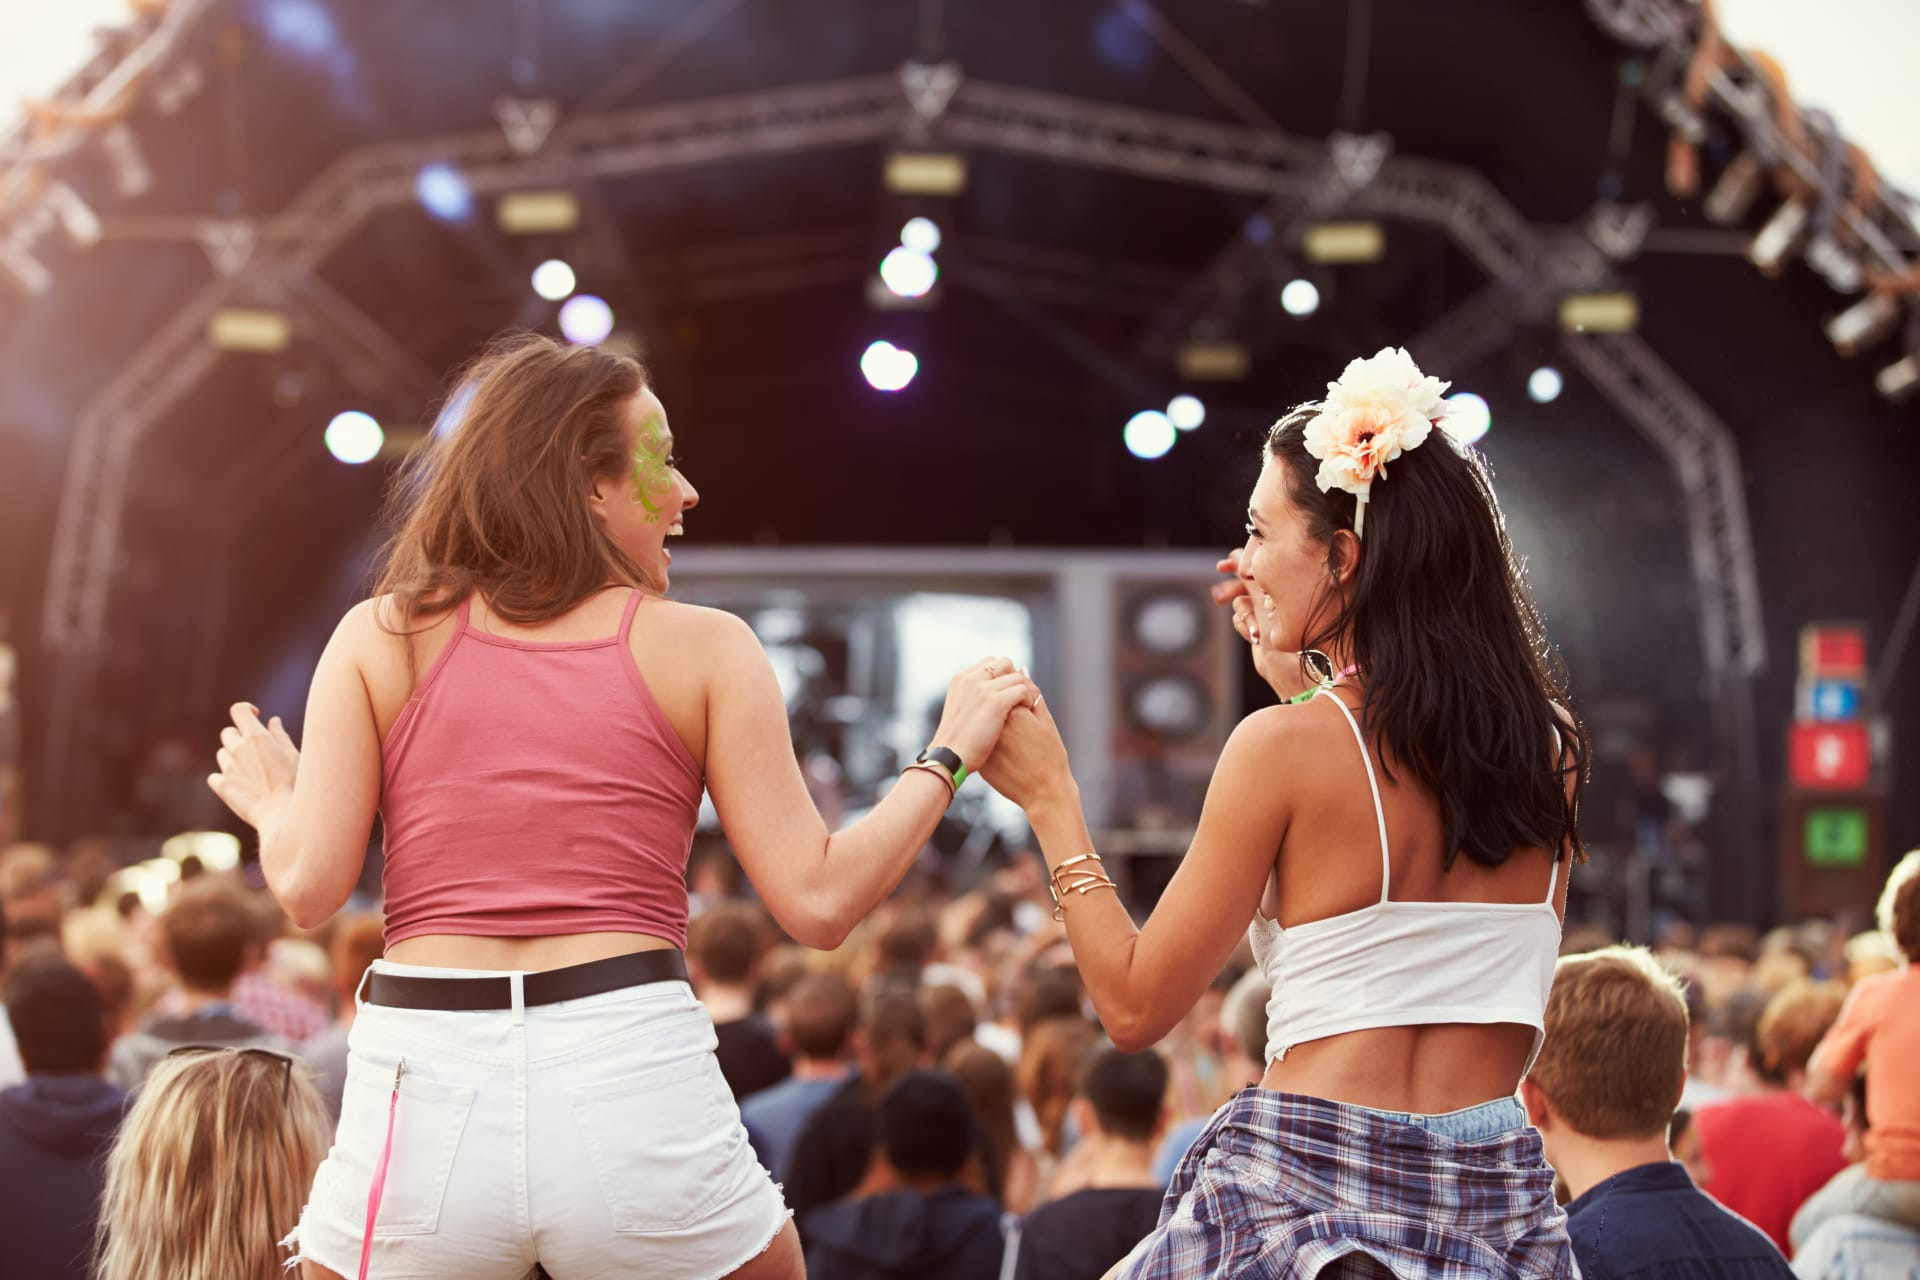 Two women at a festival